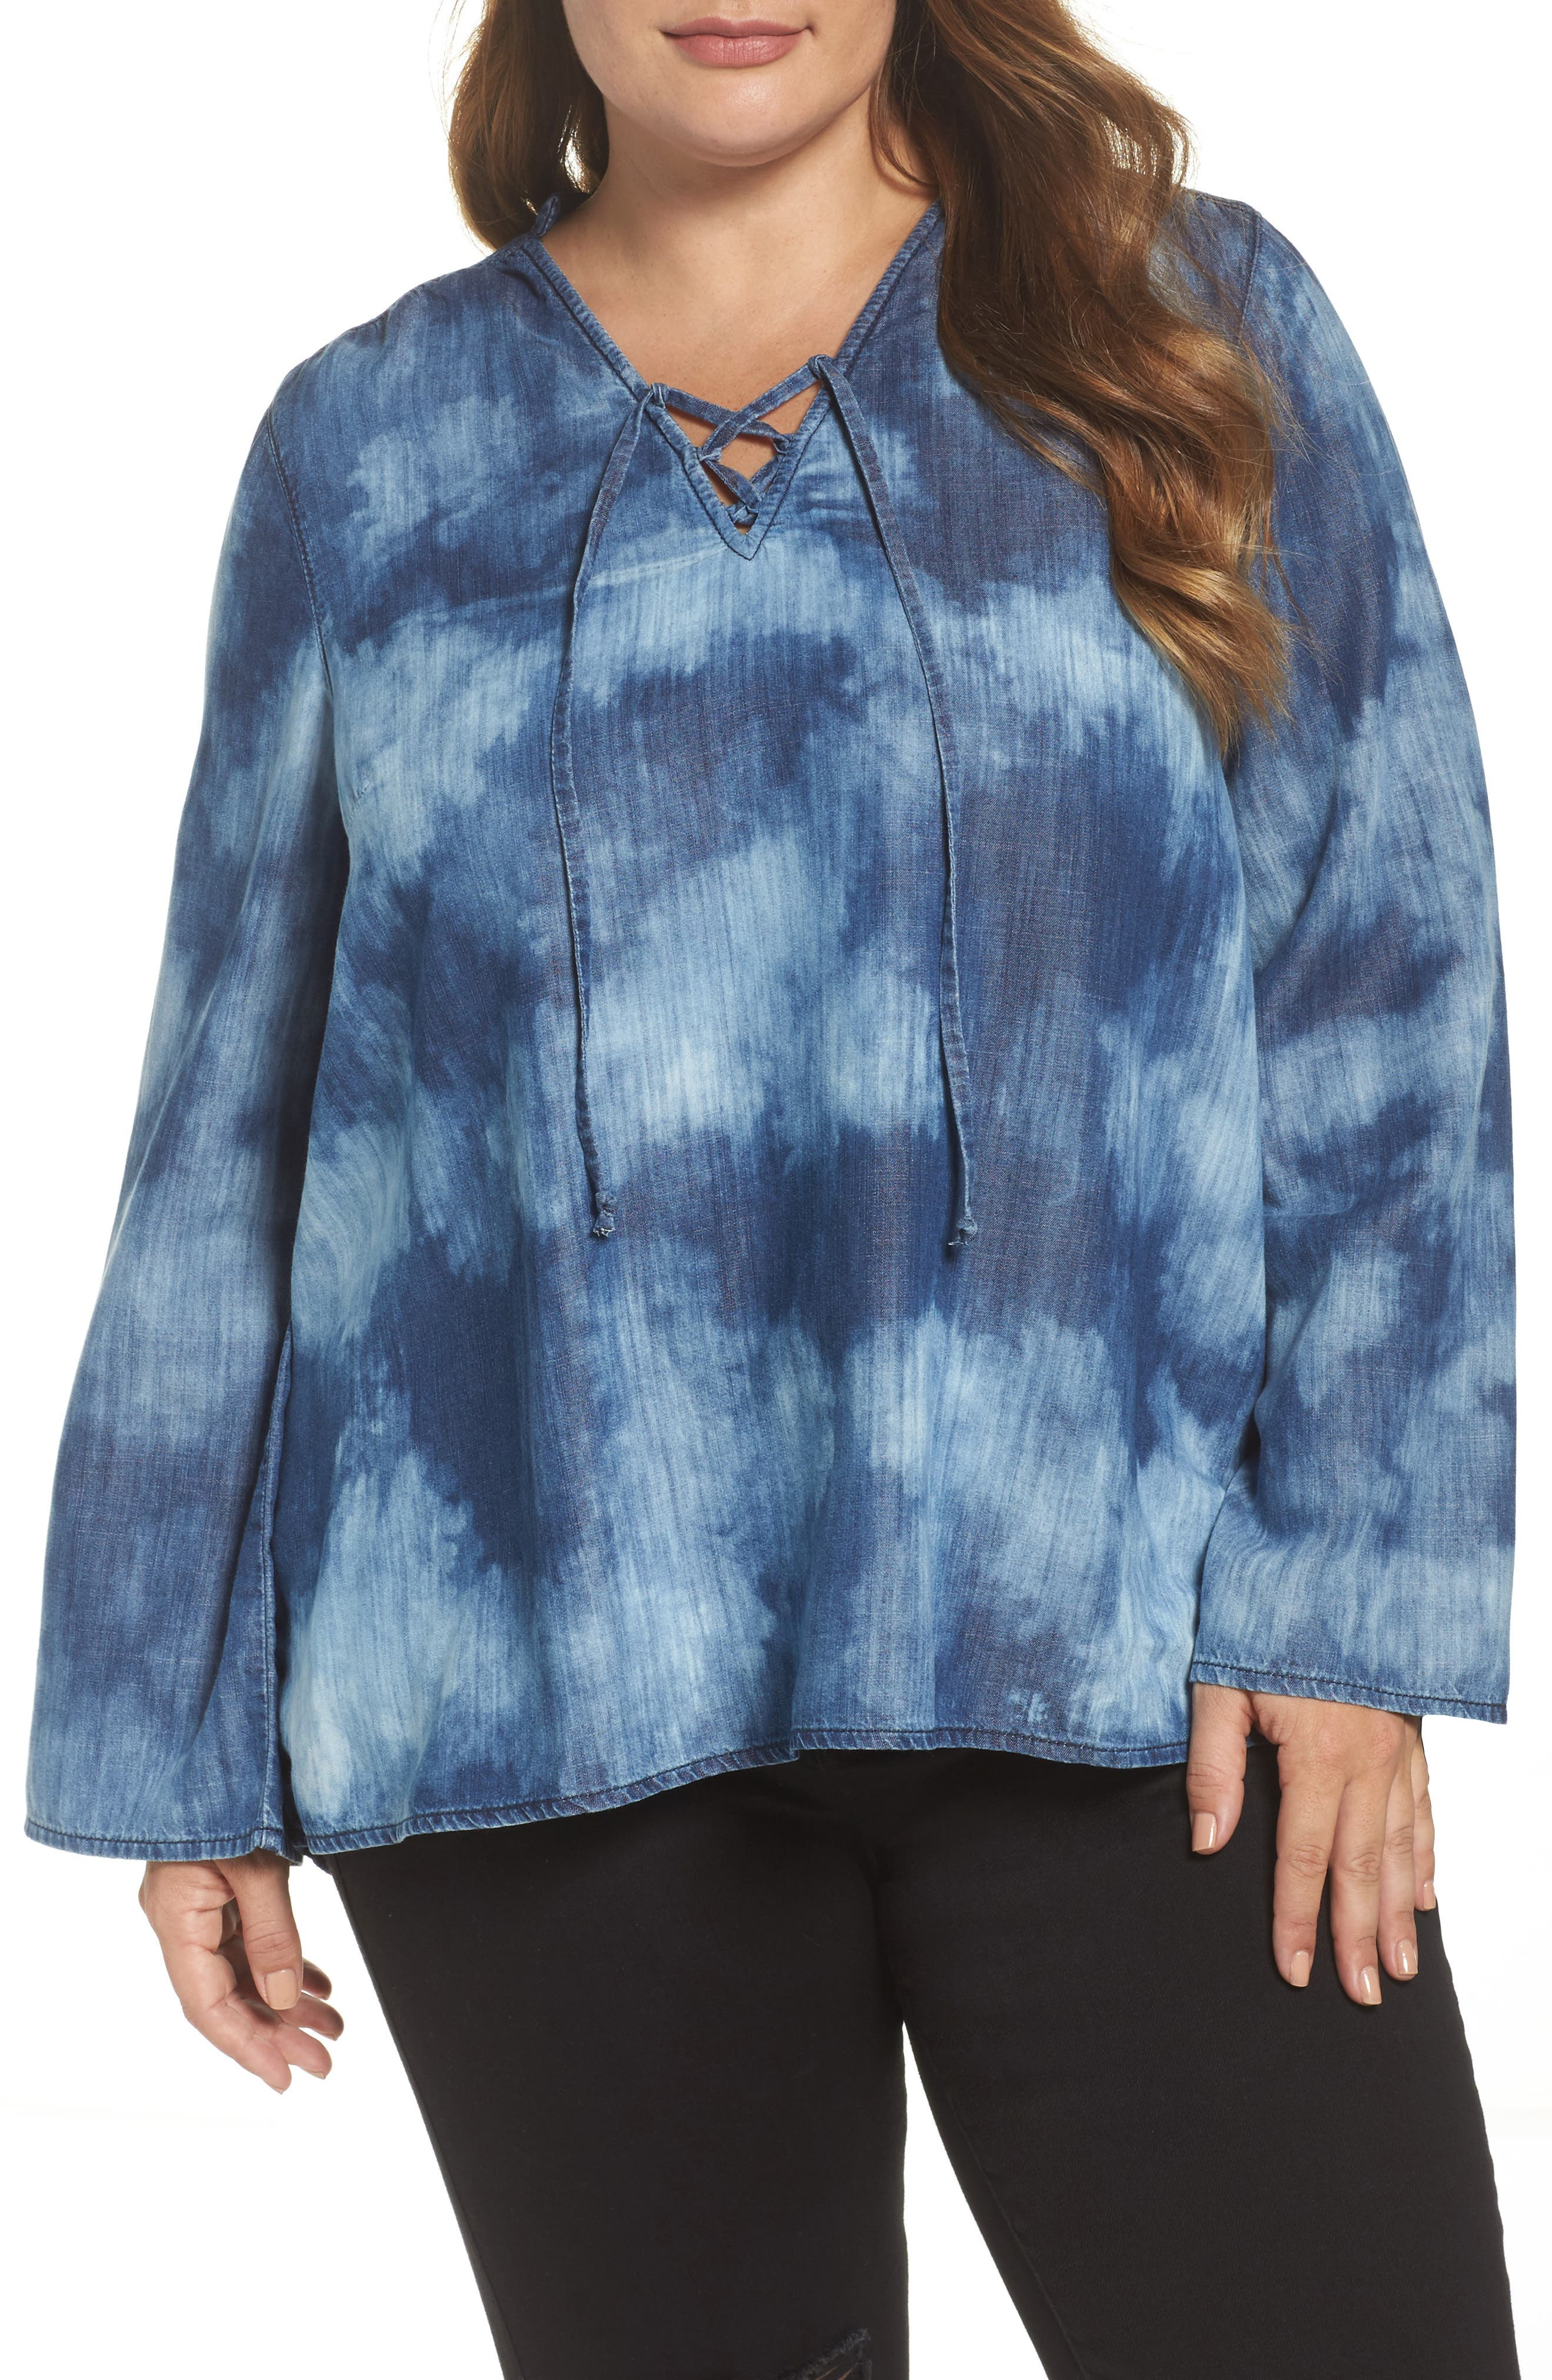 Bell Sleeve Top,                             Main thumbnail 1, color,                             422